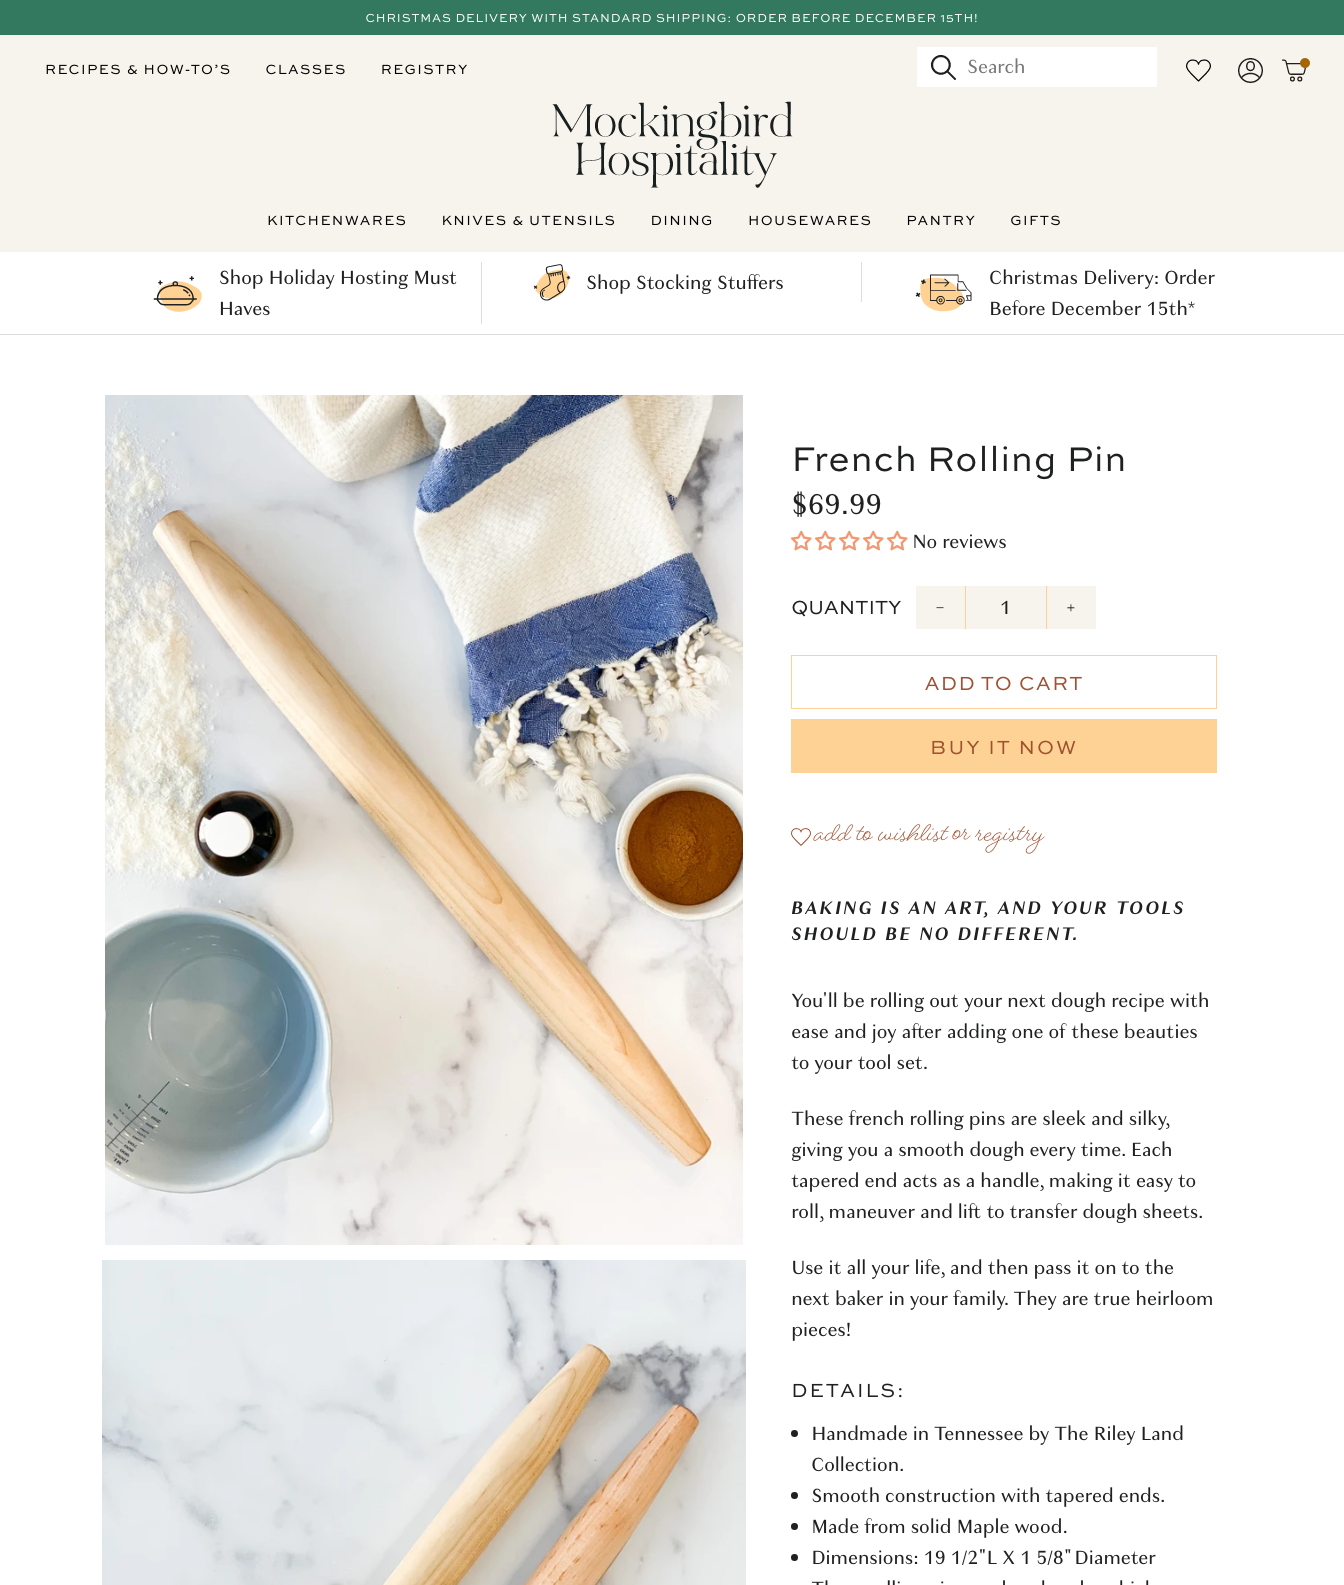 product page template on Shopify for Mockingbird Hospitality